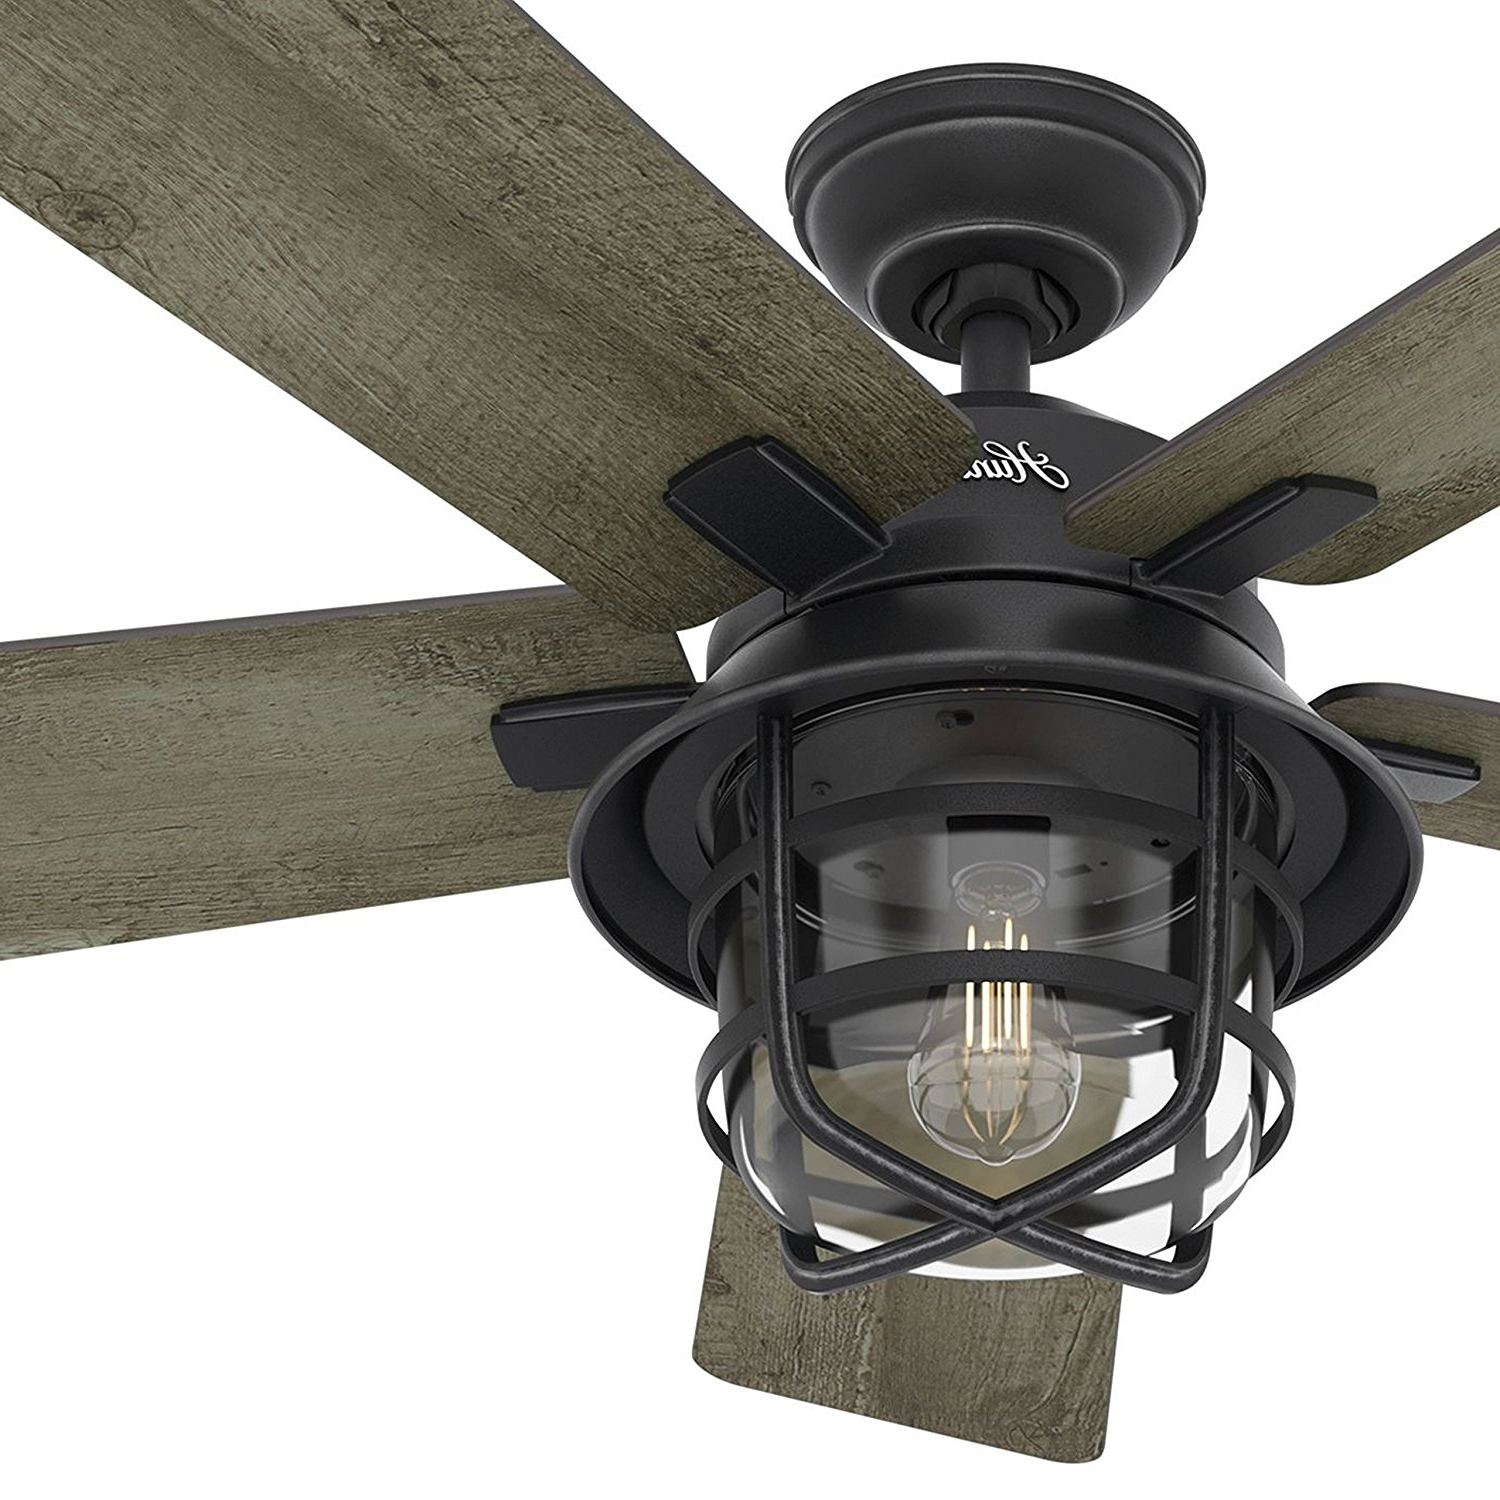 Best And Newest Outdoor Ceiling Fans With Lantern Light Intended For Guide To Choosing An Outdoor Ceiling Fan For Patios And Decks (Gallery 17 of 20)